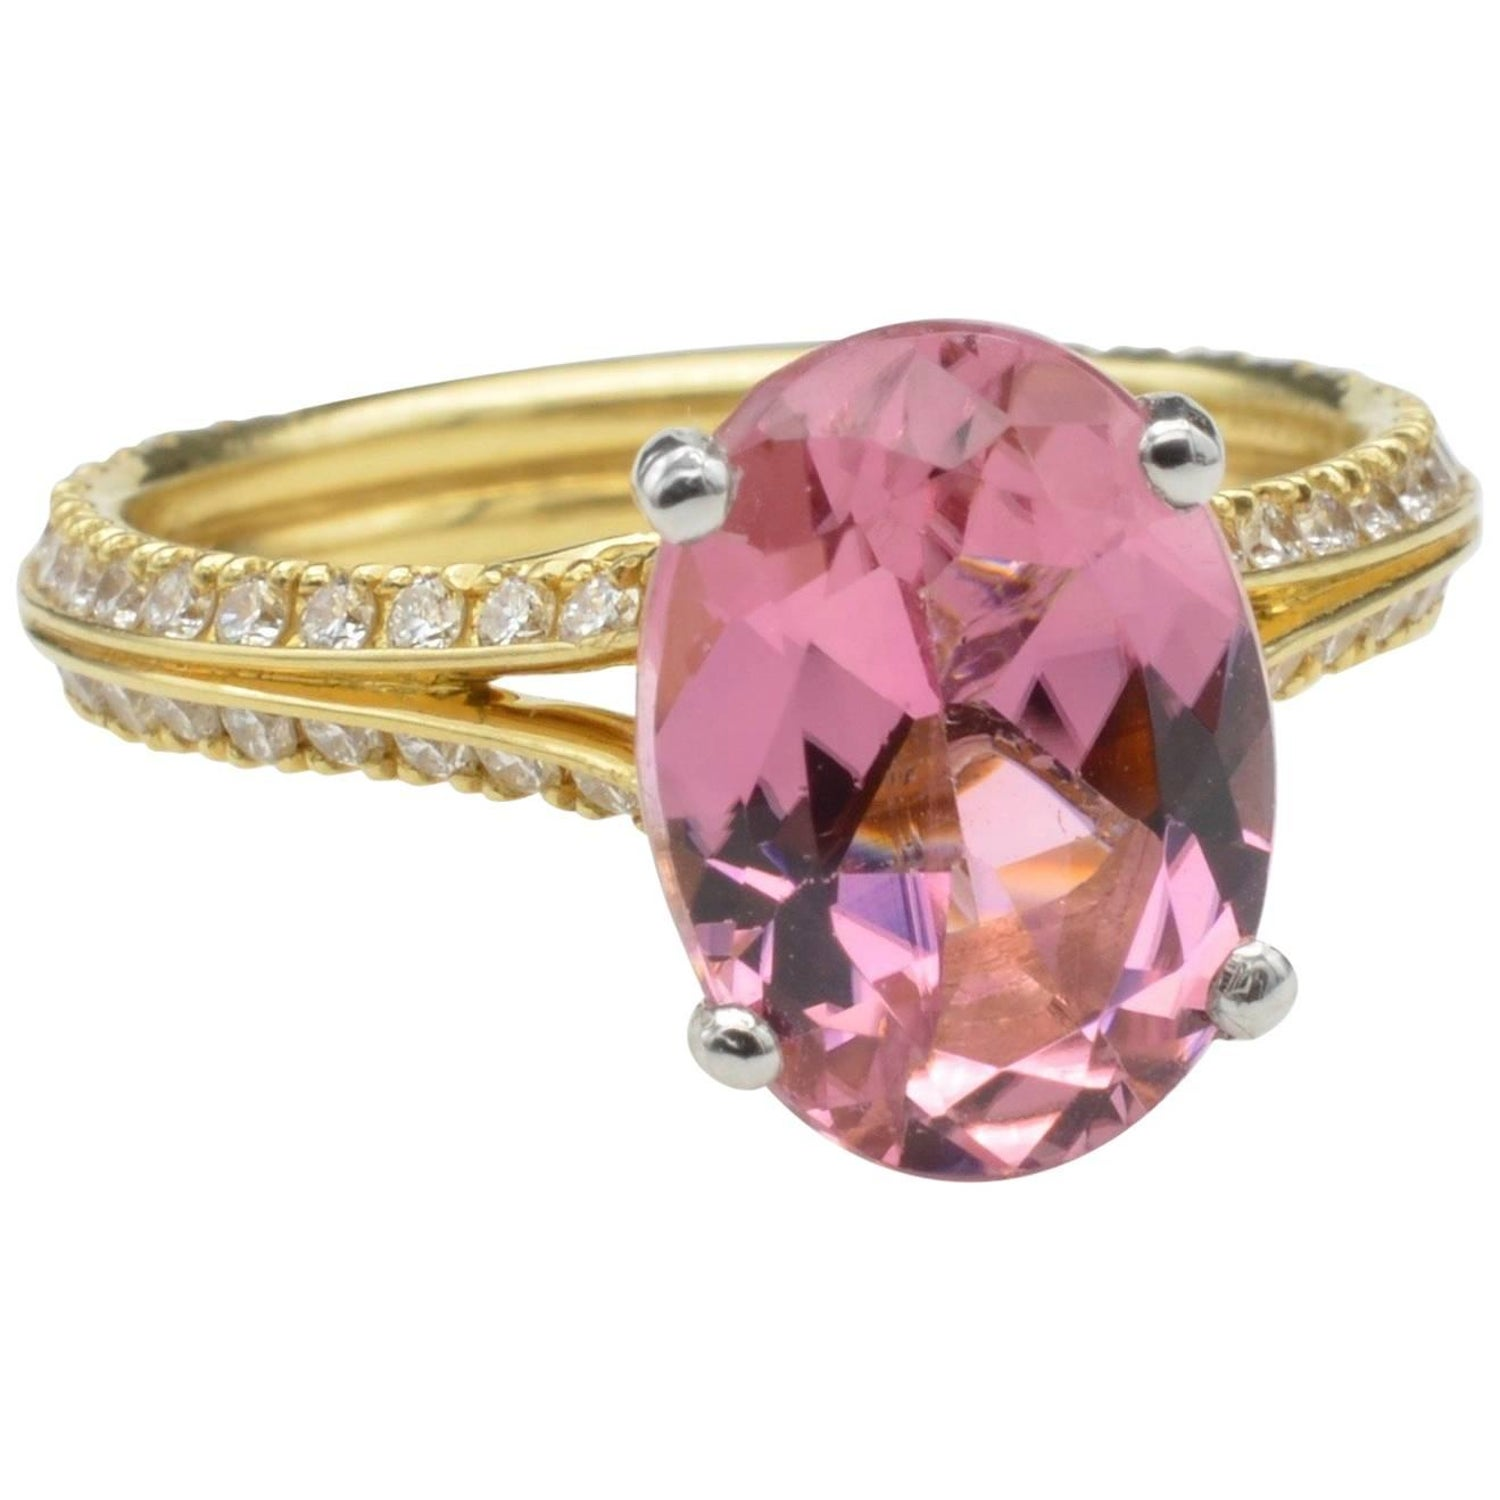 Pink Tourmaline and Diamond Platinum Engagement Ring For Sale at 1stdibs